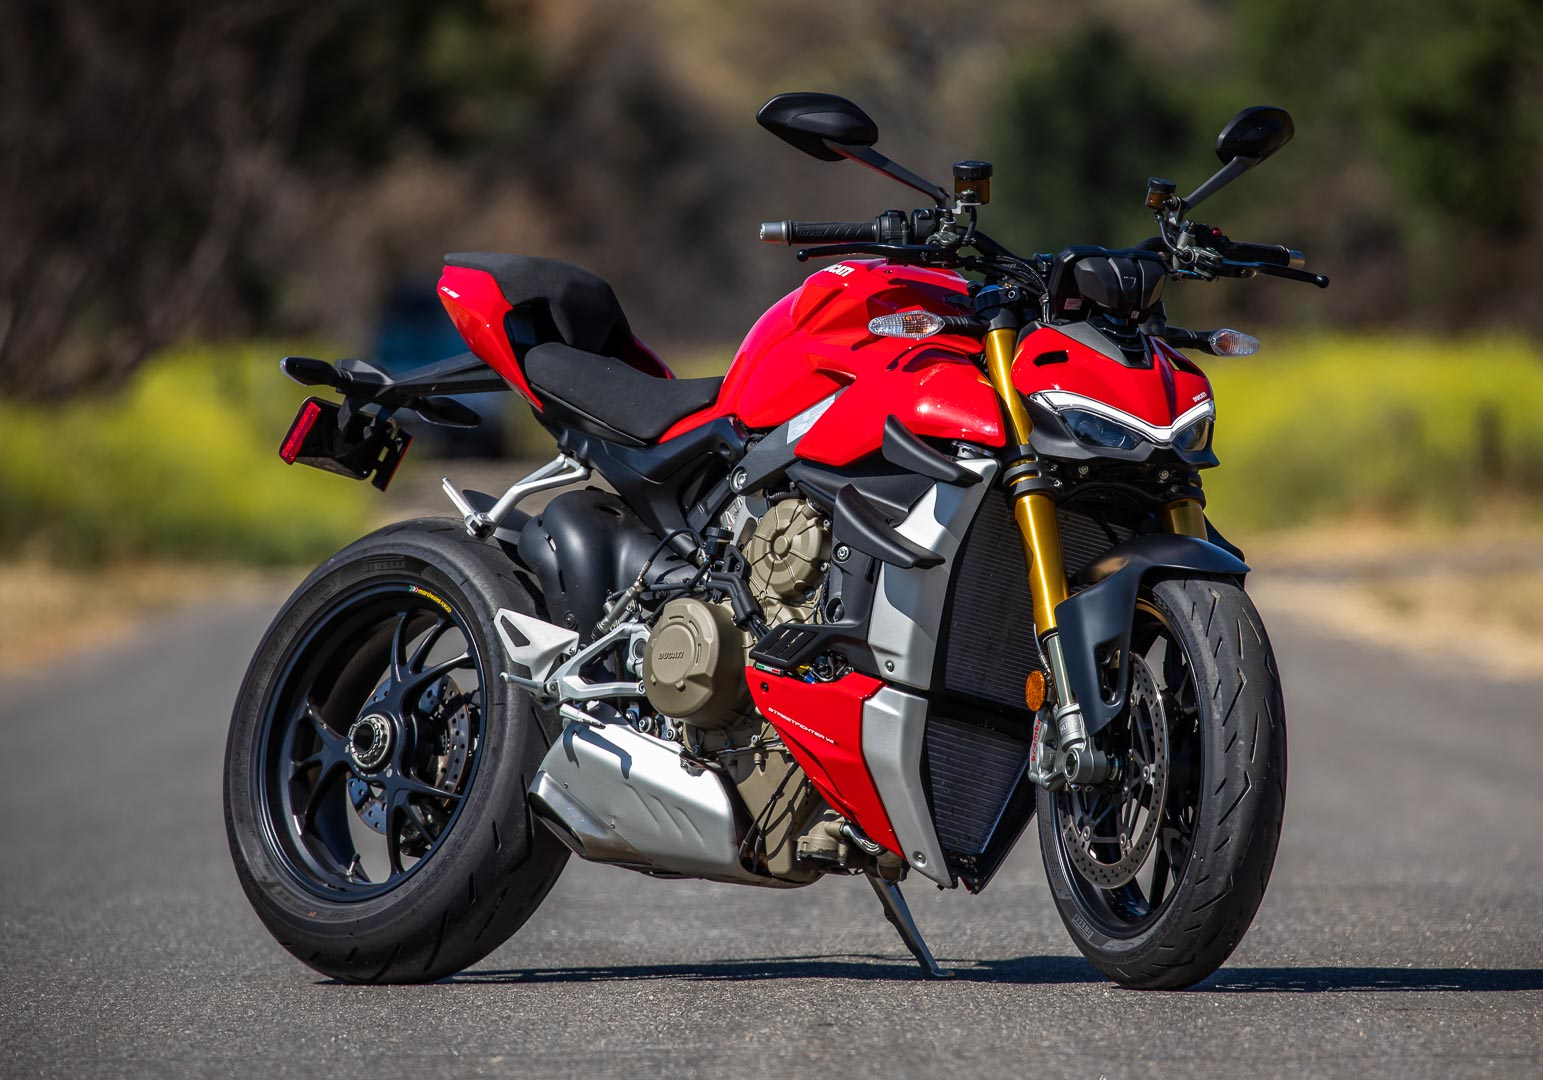 2020 Ducati Streetfighter V4 S Review - MSRP